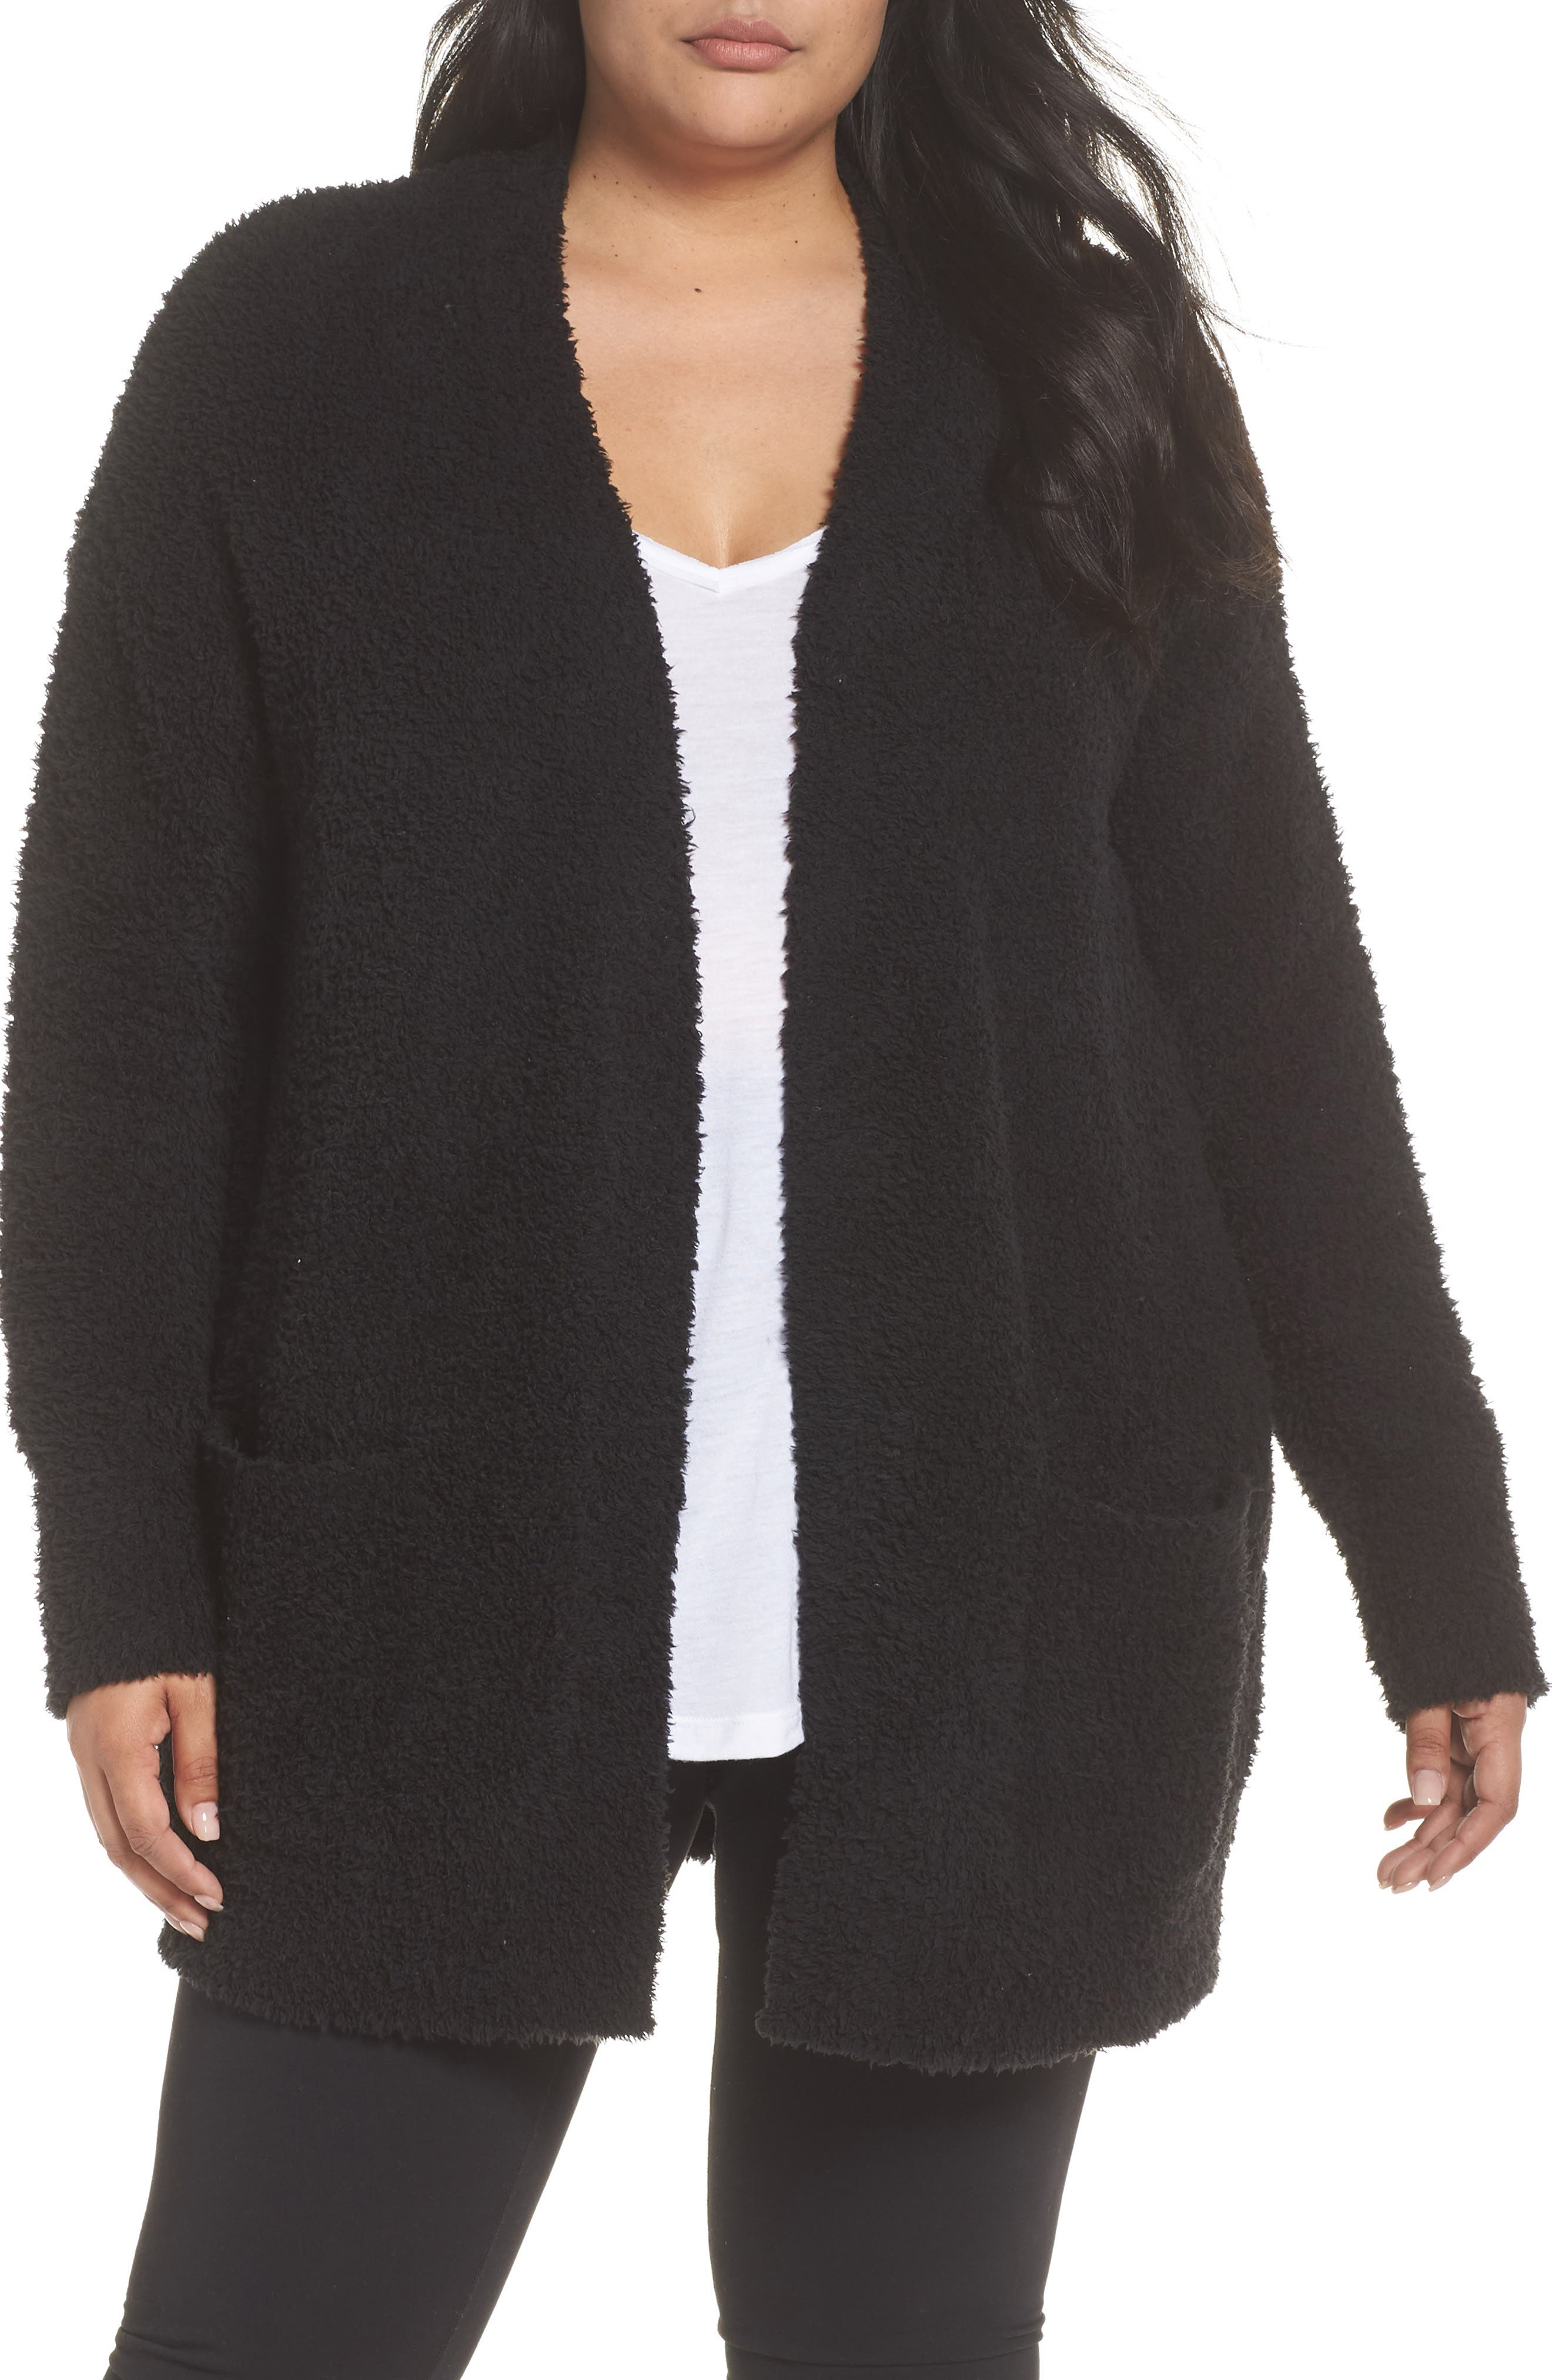 BAREFOOT DREAMS<SUP>®</SUP> CozyChic<sup>®</sup> Cardigan, Main, color, BLACK